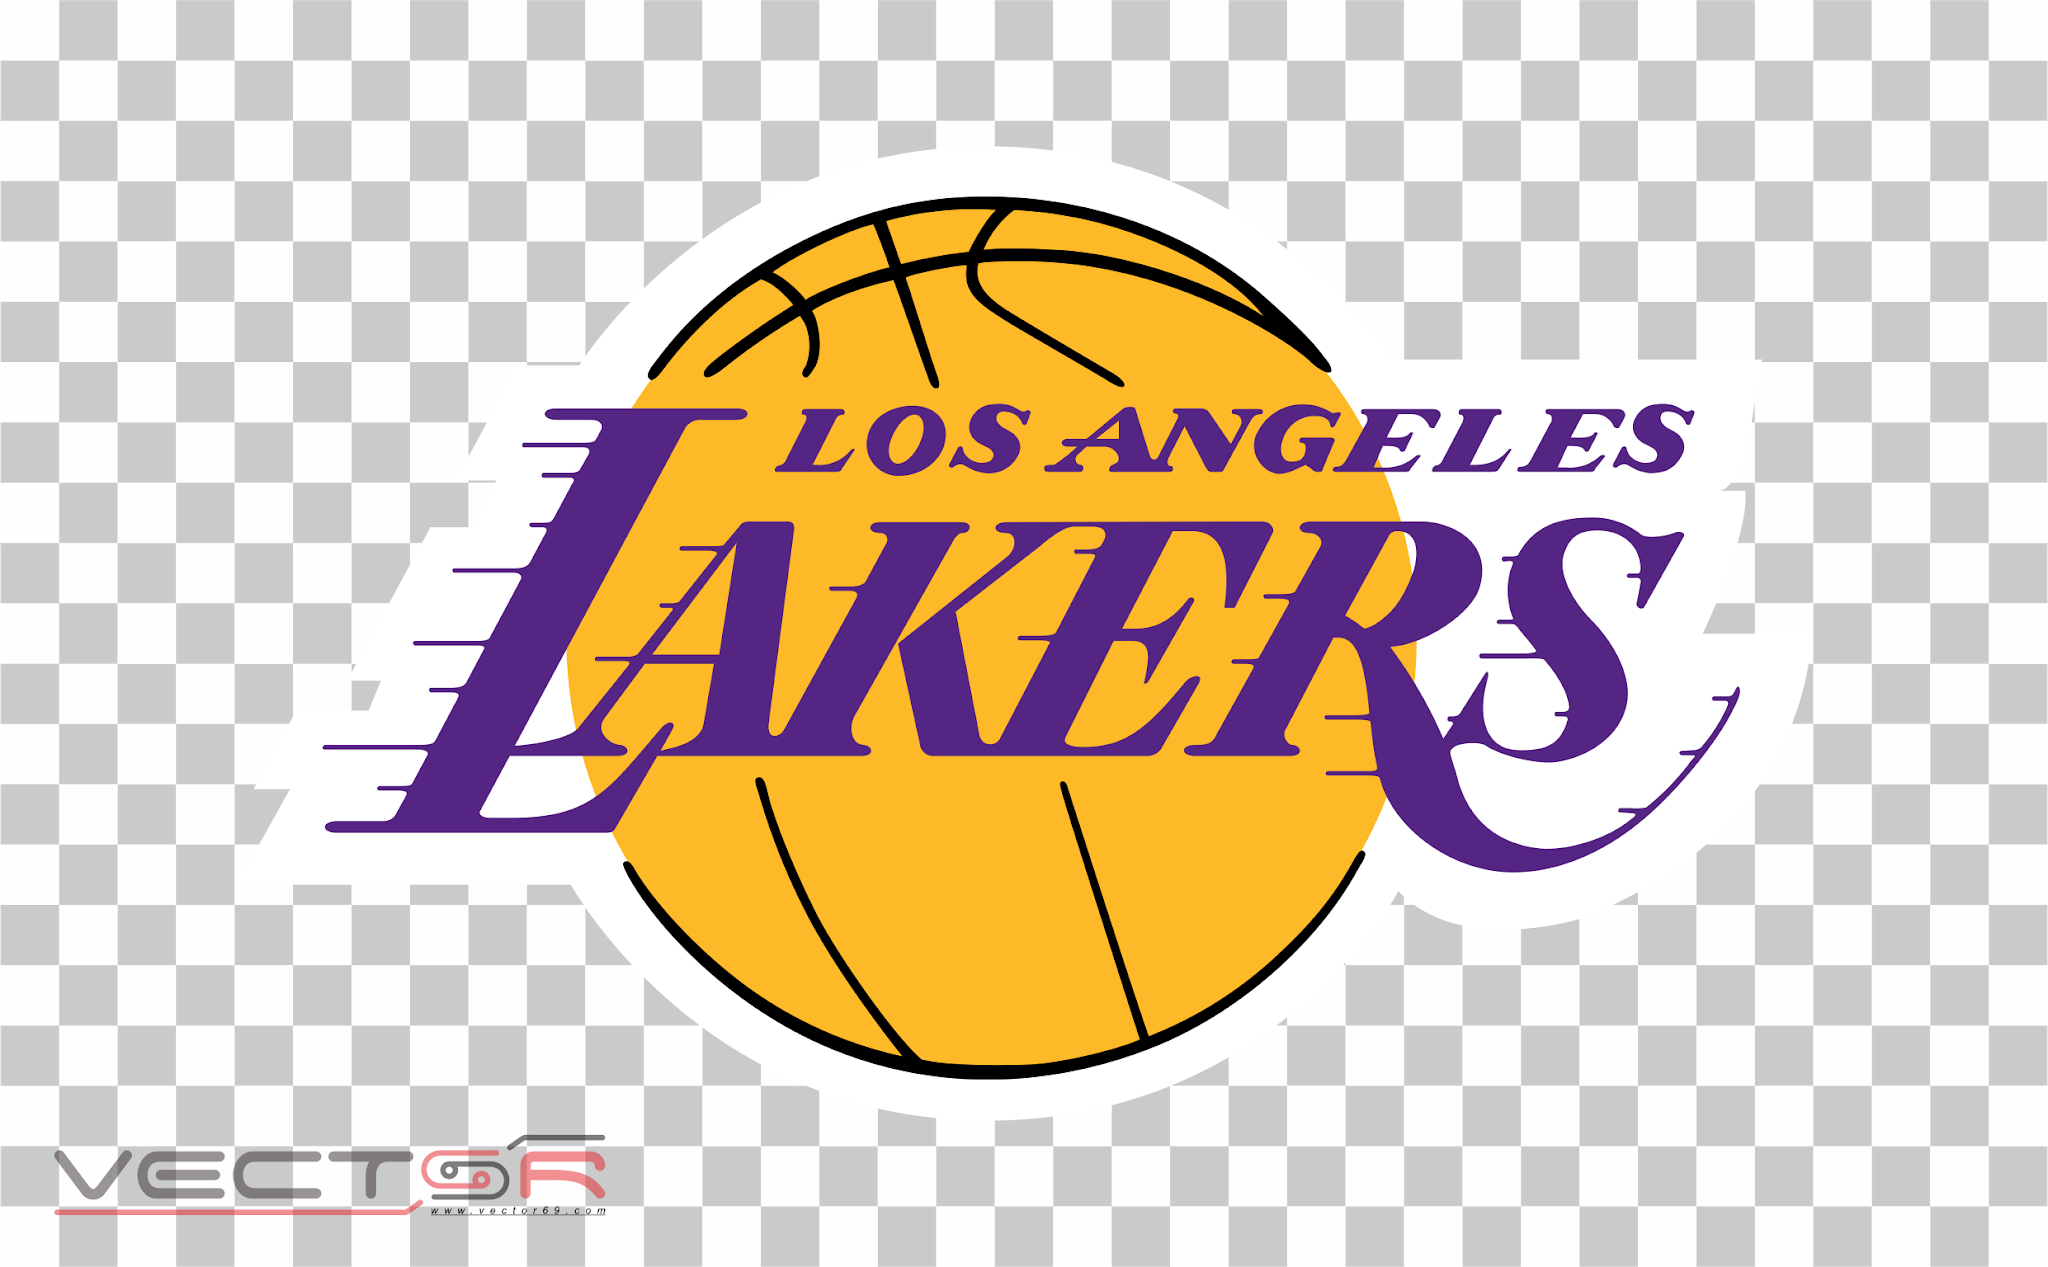 Los Angeles Lakers Logo - Download .PNG (Portable Network Graphics) Transparent Images